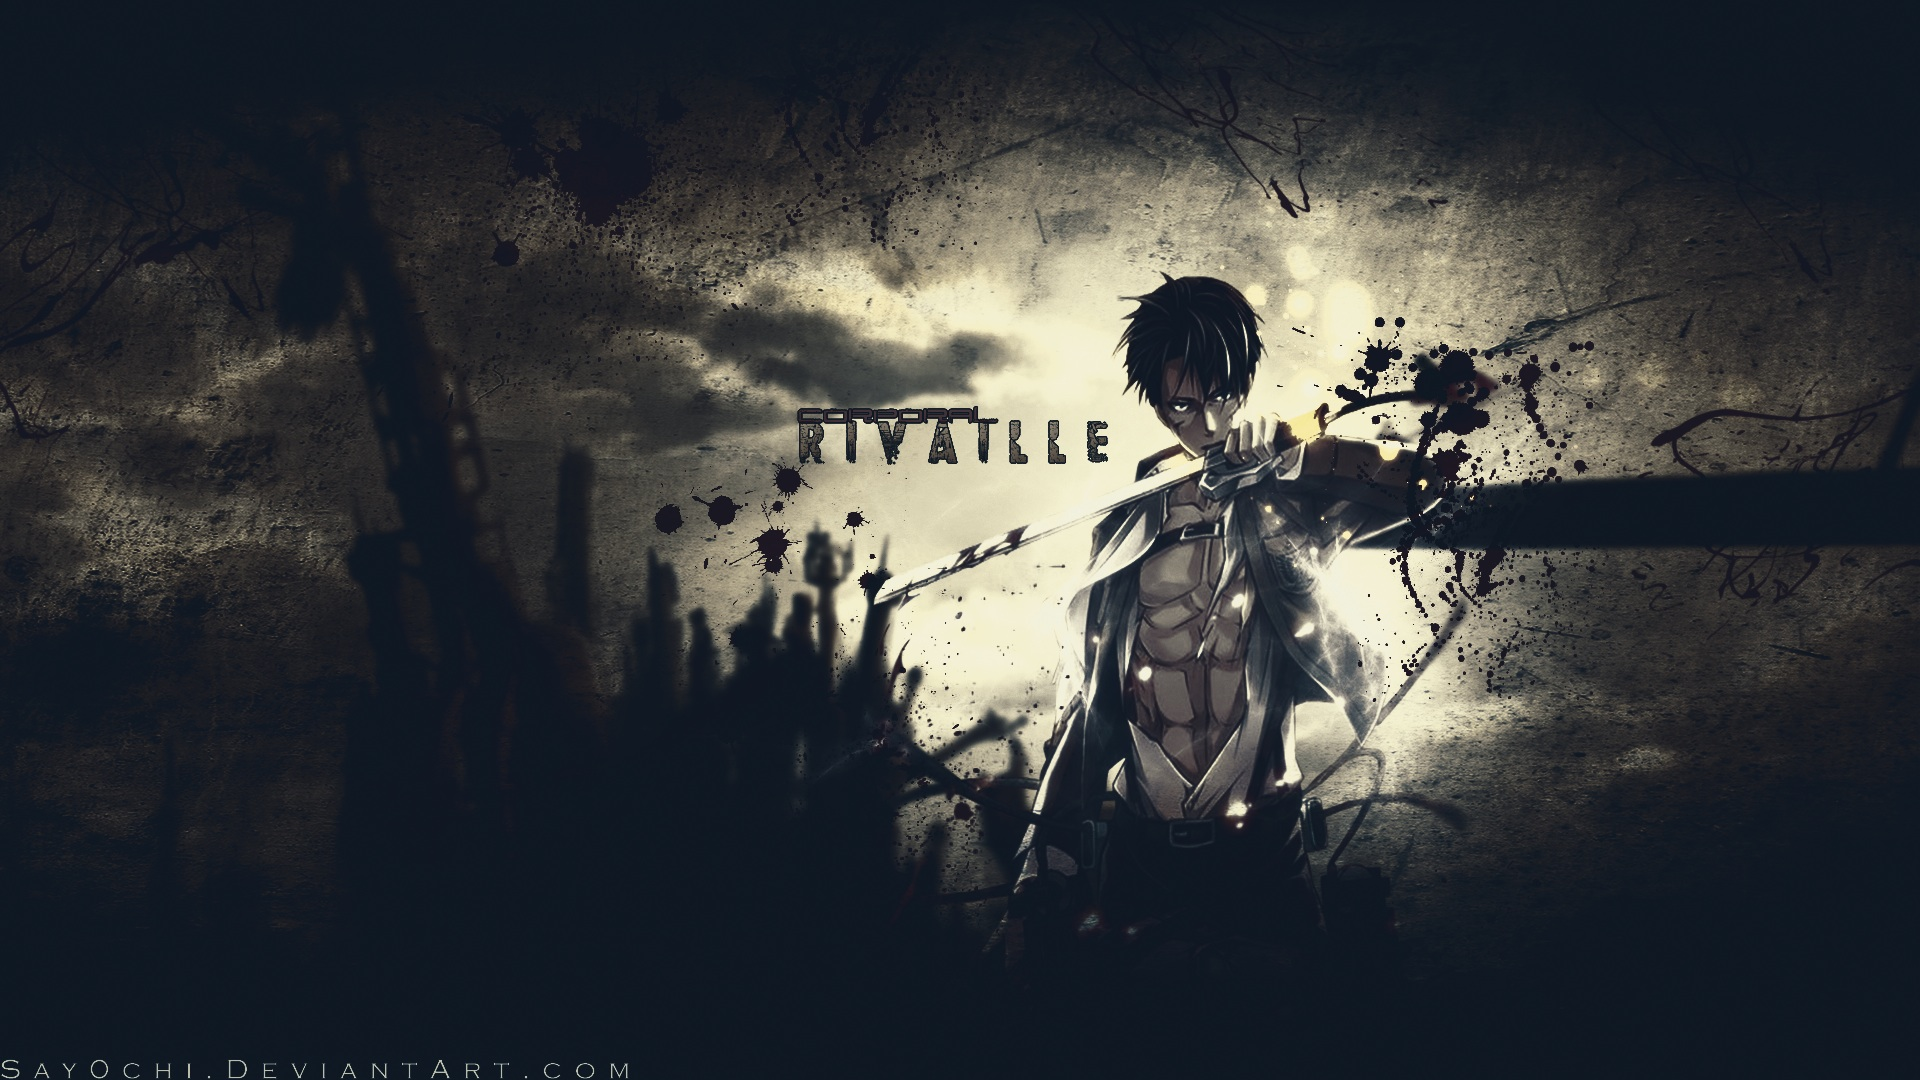 Rivaille Wallpaper   Shingeki no Kyojin Attack on titan 1920x1080